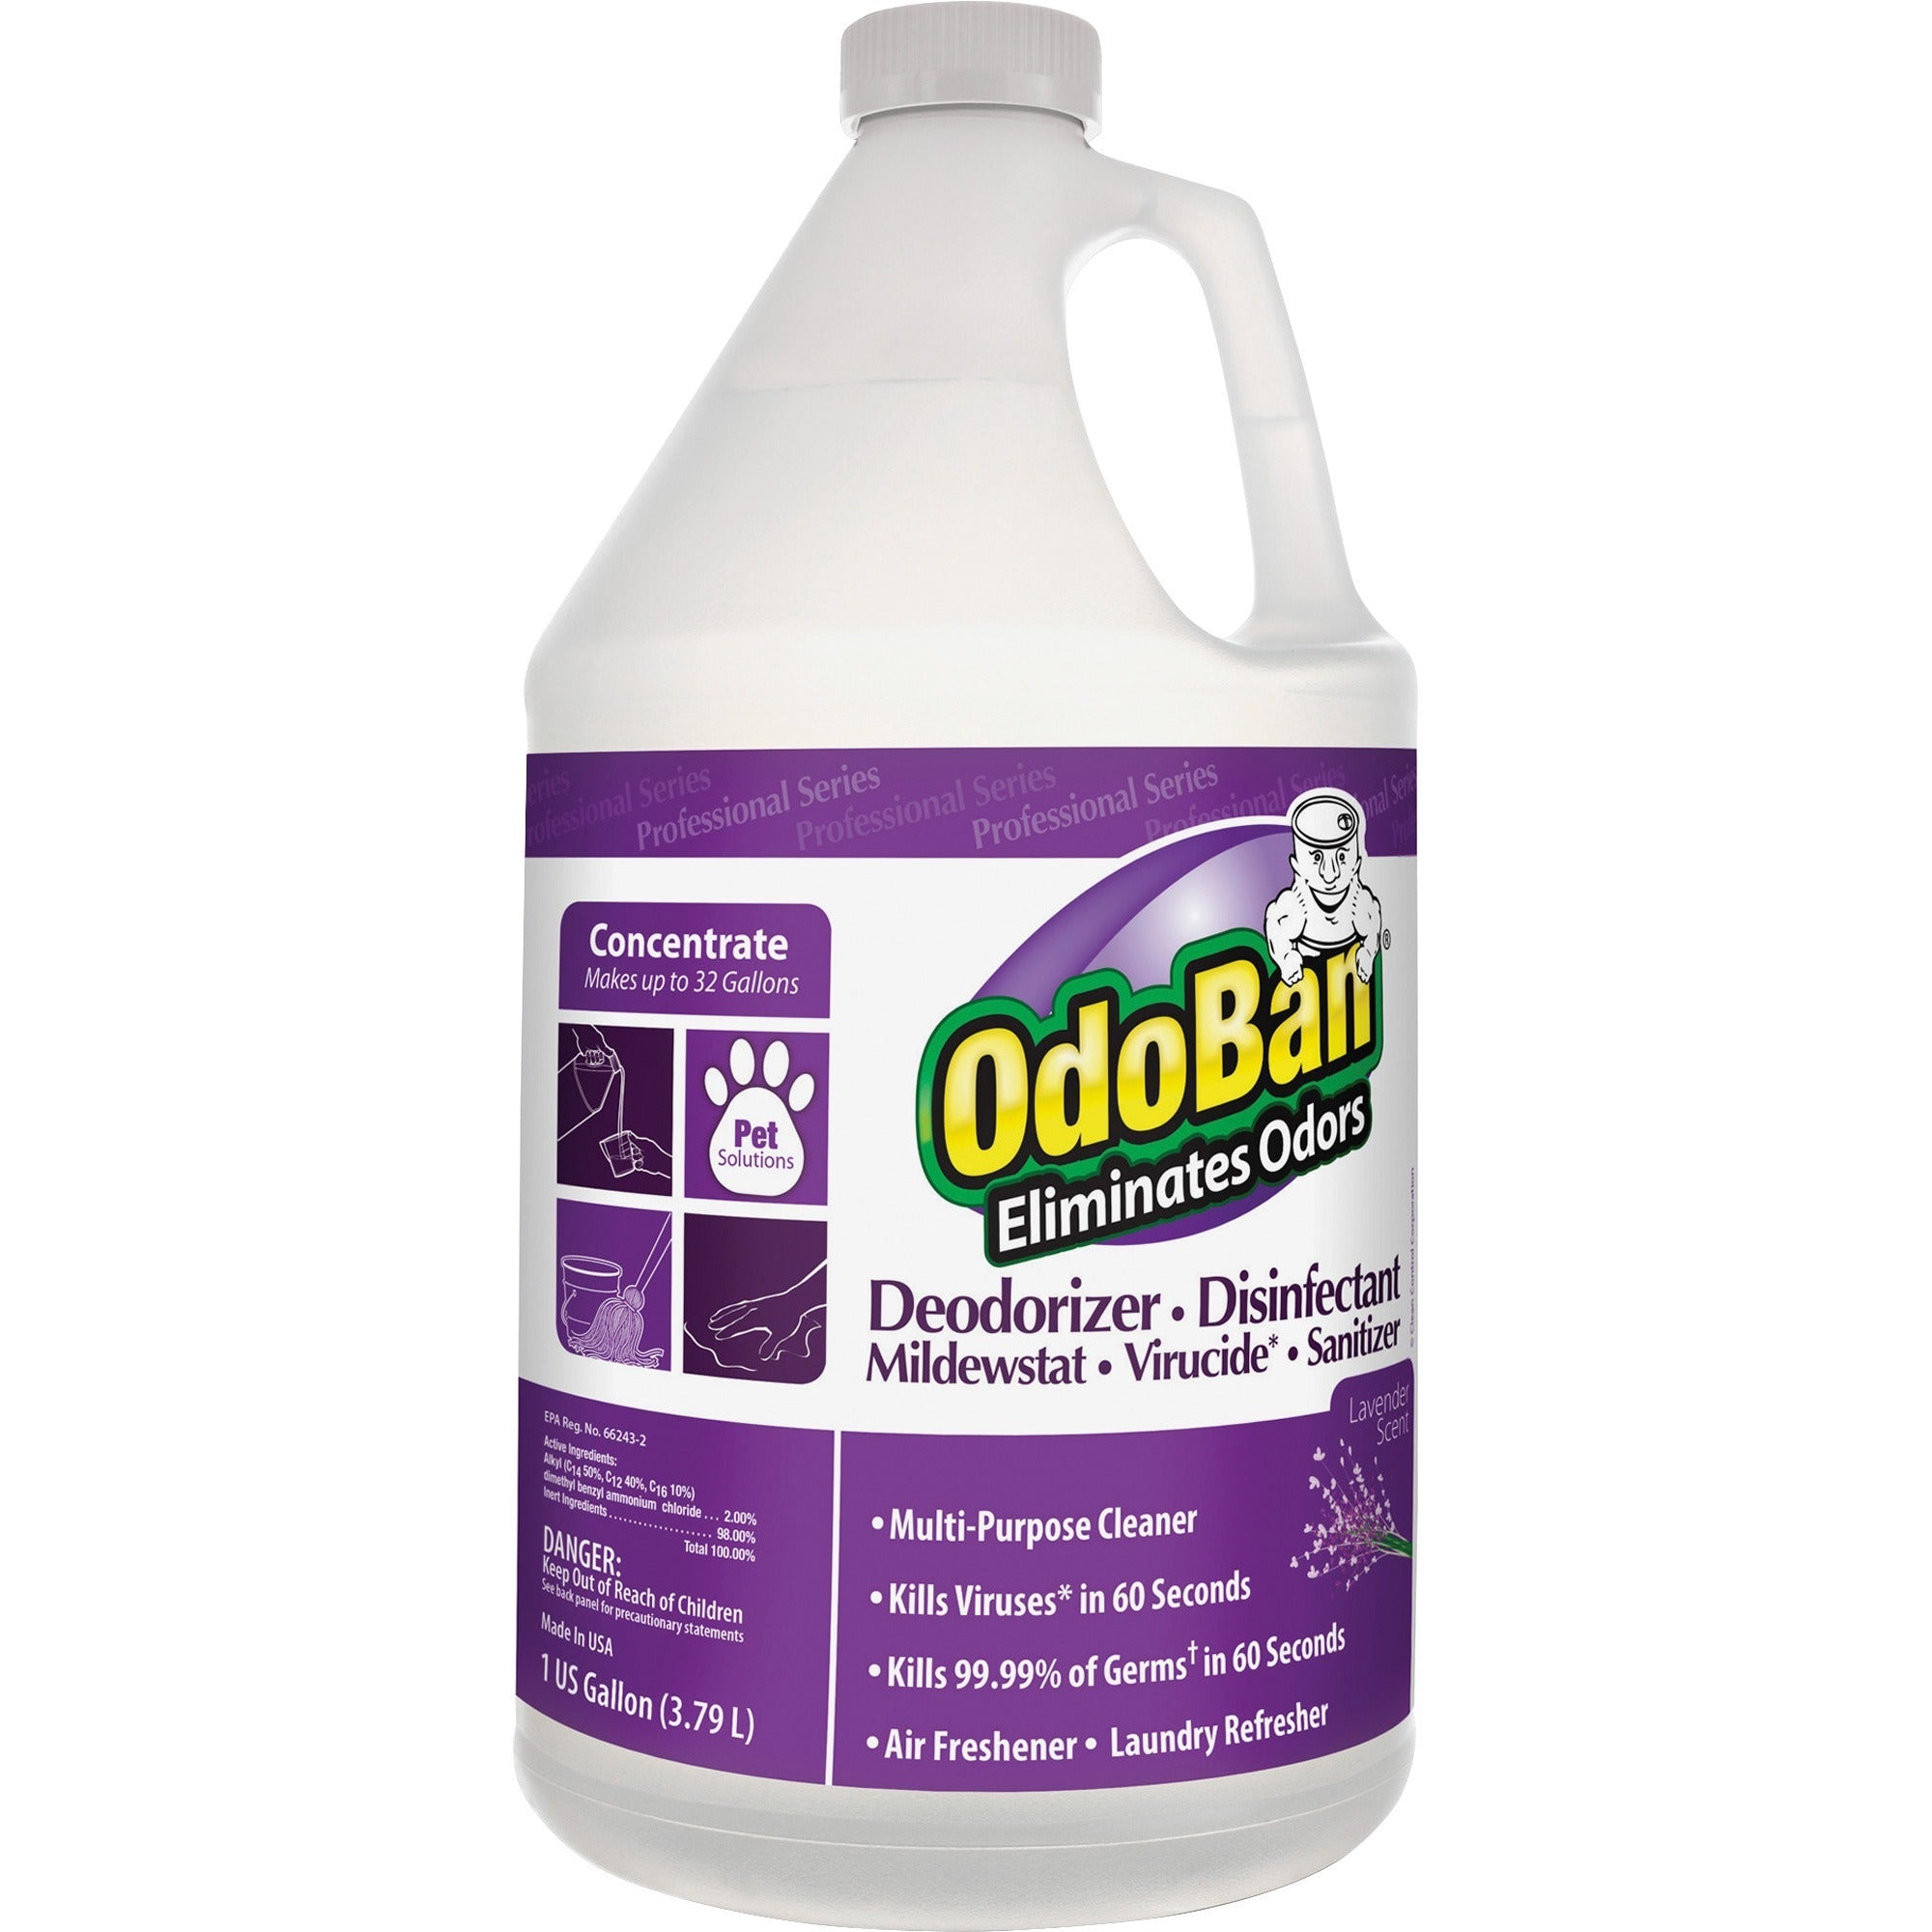 OdoBan Deodorizer Disinfectant Cleaner Concentrate 1 Gallon